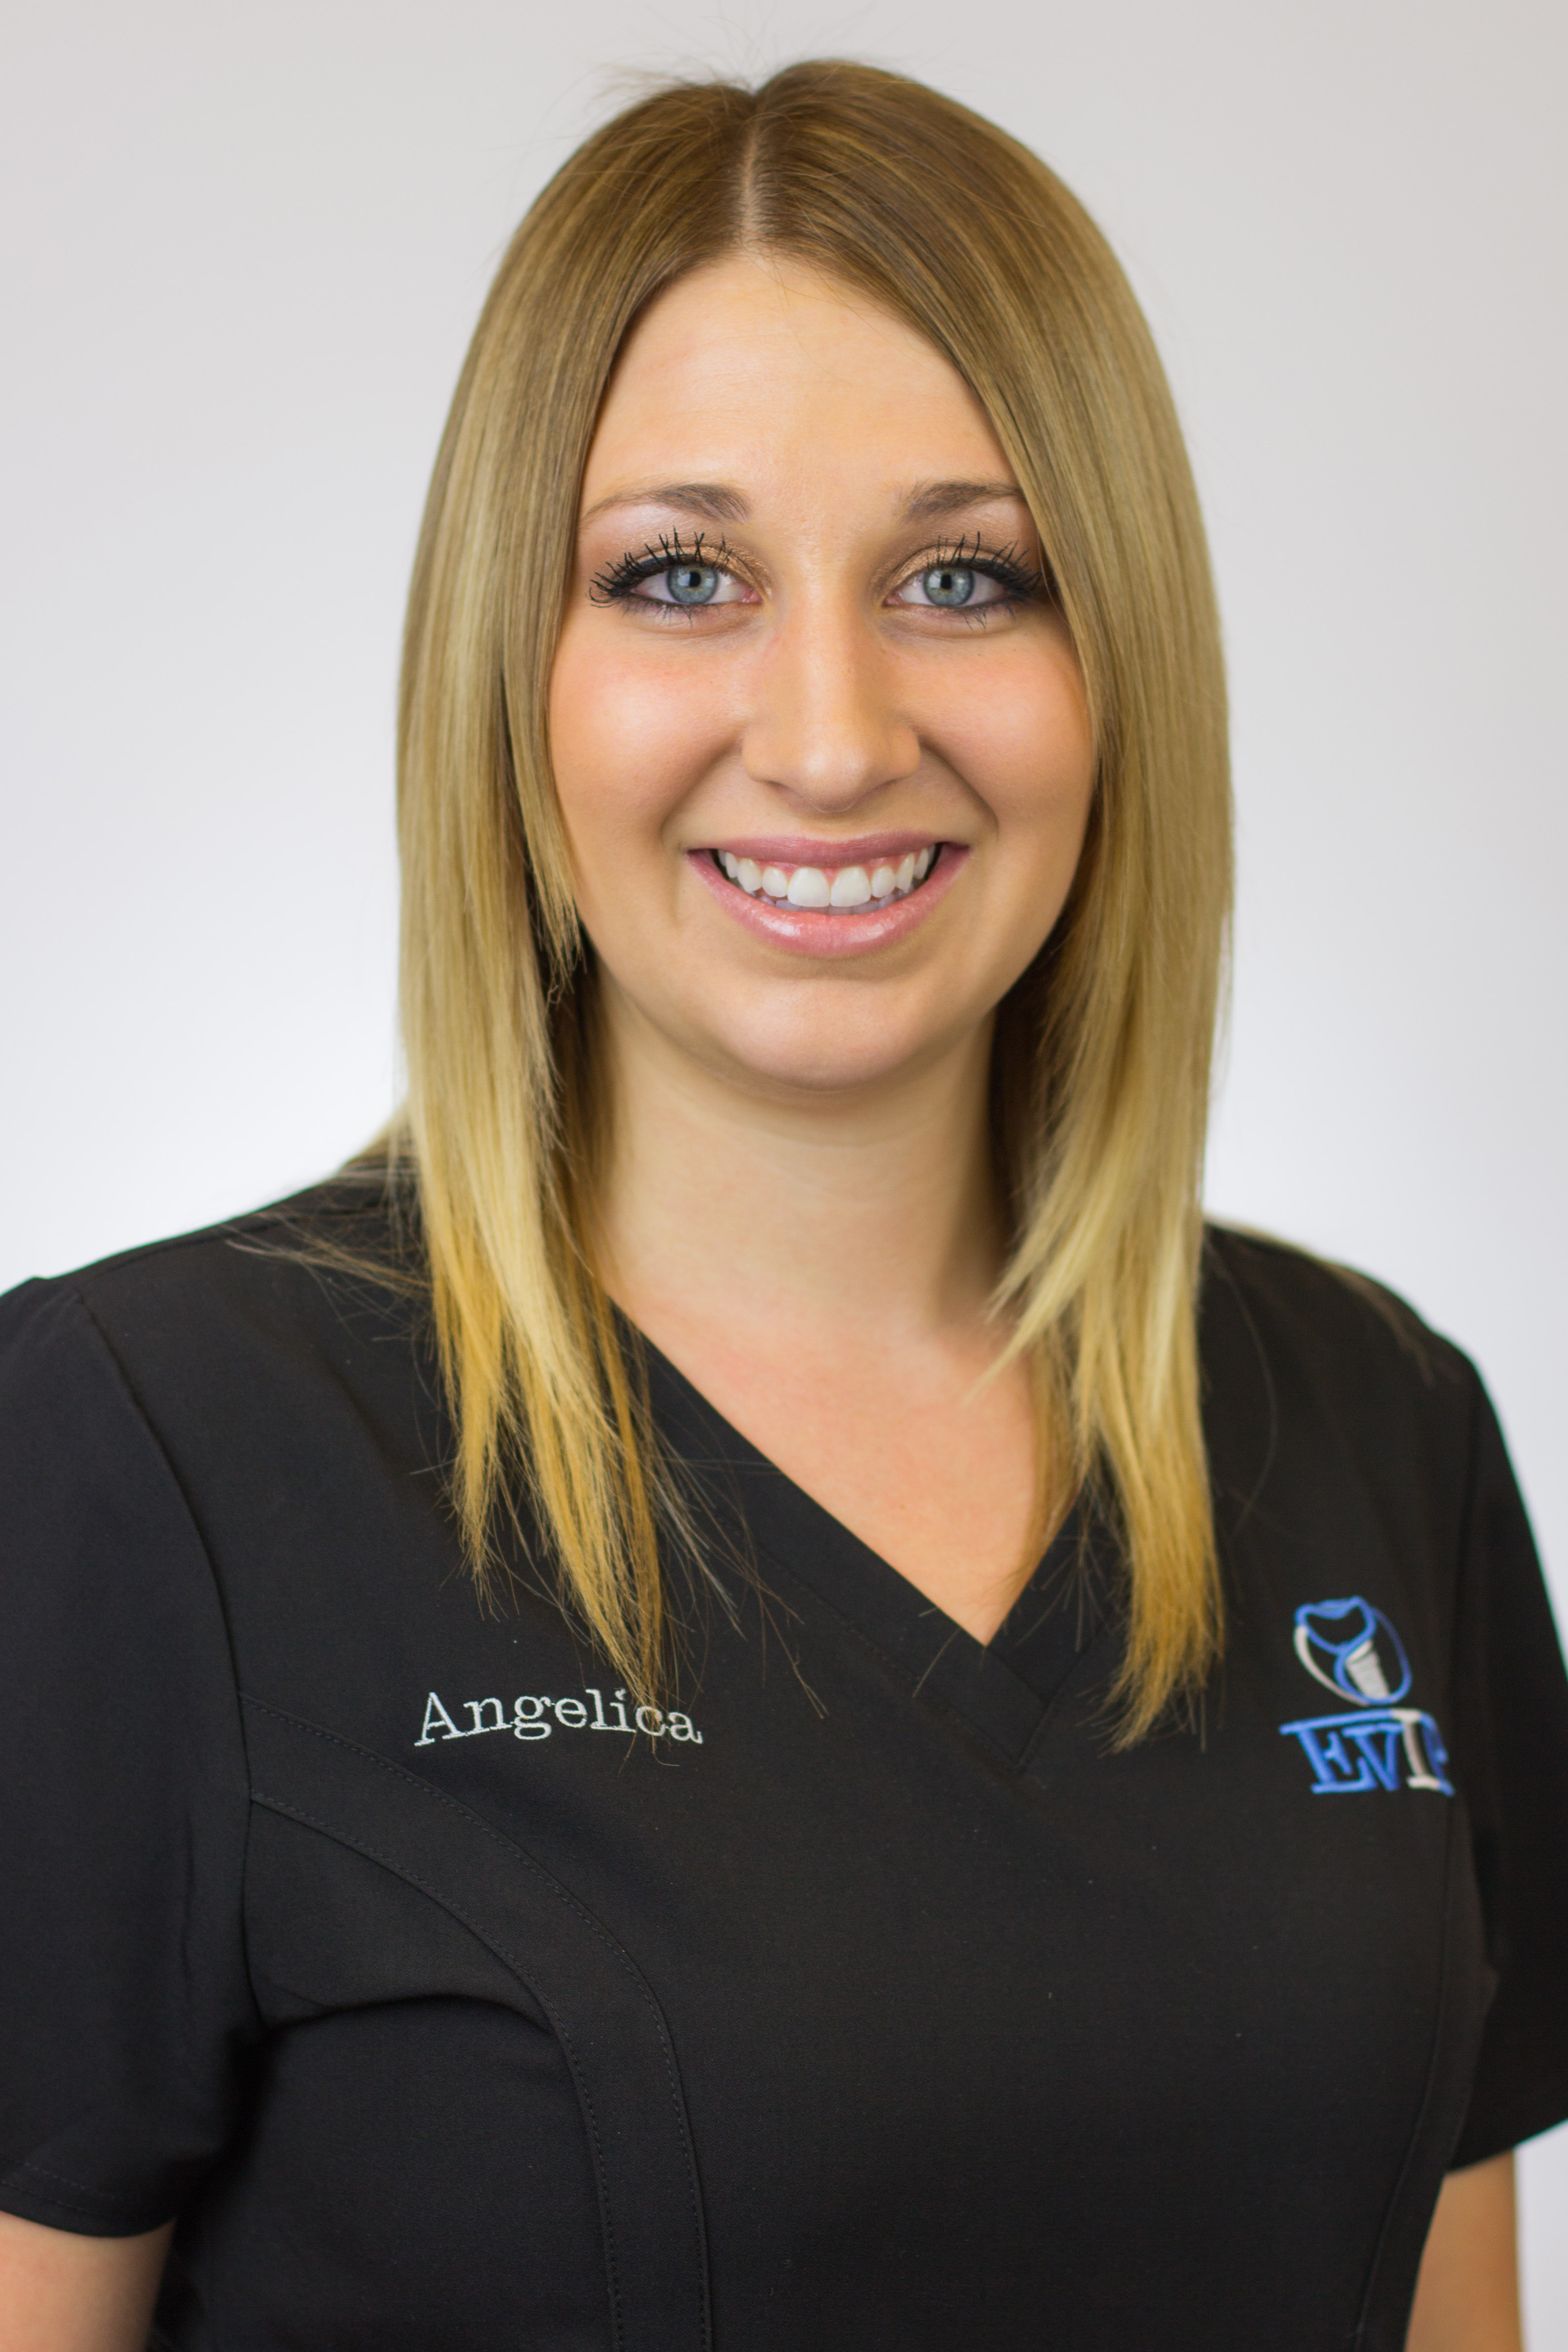 Angelica is part of the friendly staff at East Valley Implant